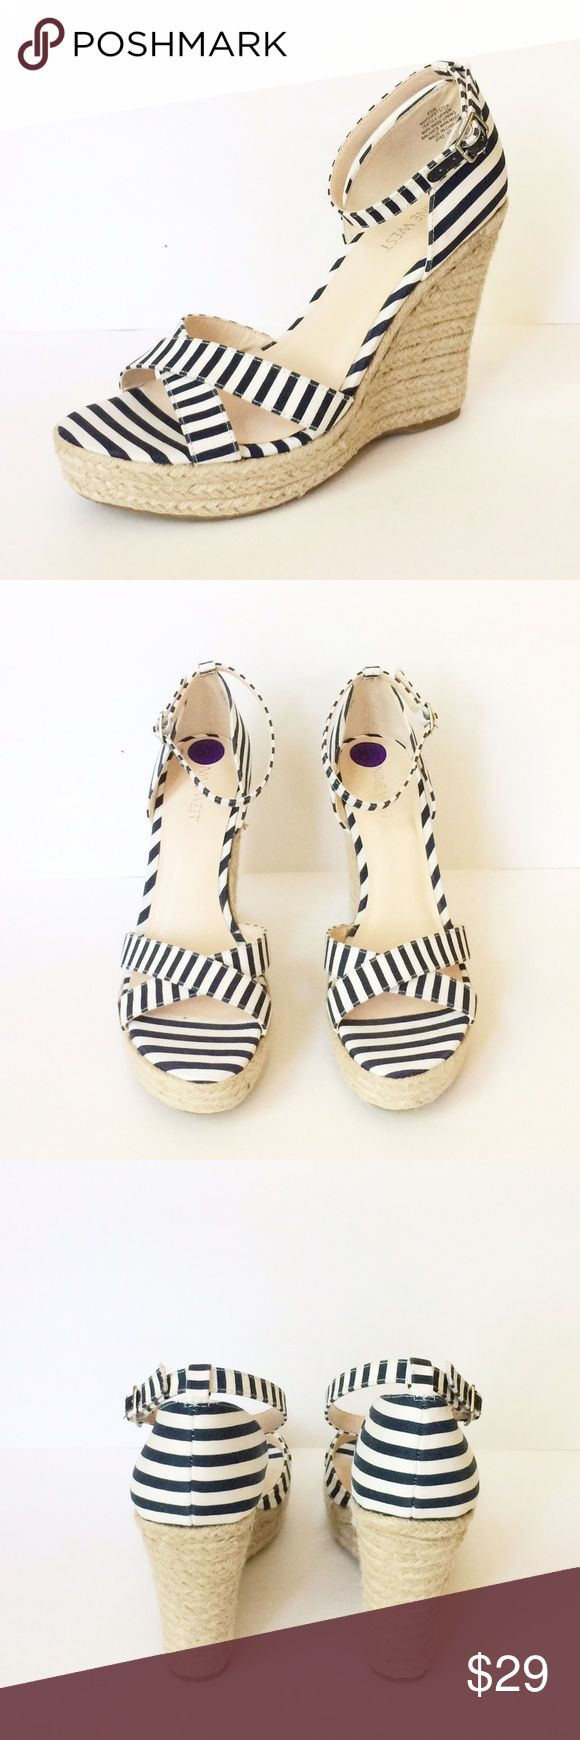 NWOT Nine West Blue and White Espadrilles Chic and stylish! Espadrilles are the perfect carefree footwear to go anywhere. These Nine West wedges have blue and white stripes with a t-strap. The platforms are 4.5 inches tall. Great with jeans, dress, or a skirt! Nine West Shoes Espadrilles